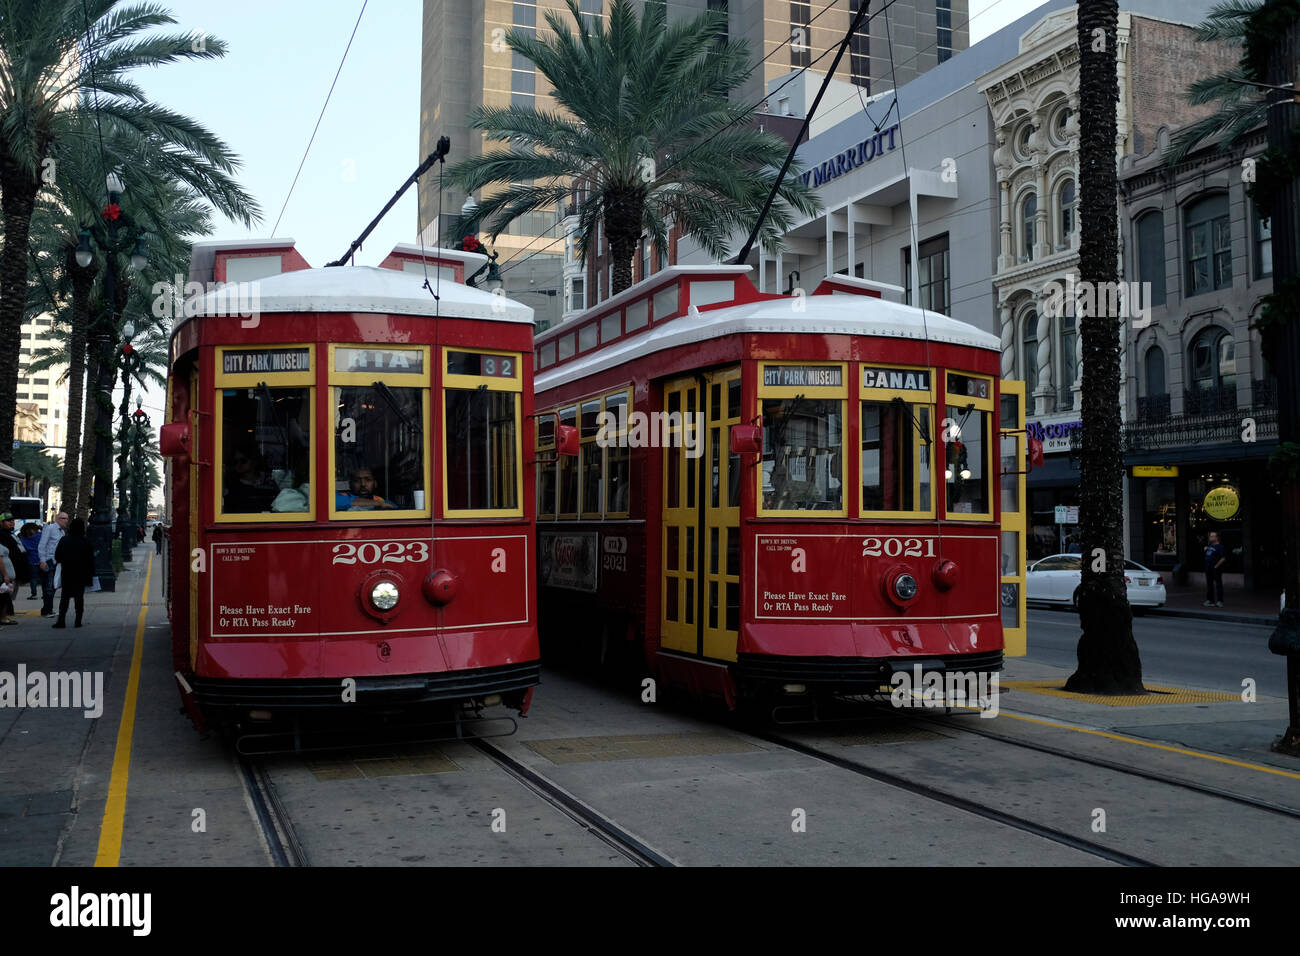 NEW ORLEANS, LA: Streetcars on Canal Street in the French Quarter.  11/15/16 - Stock Image